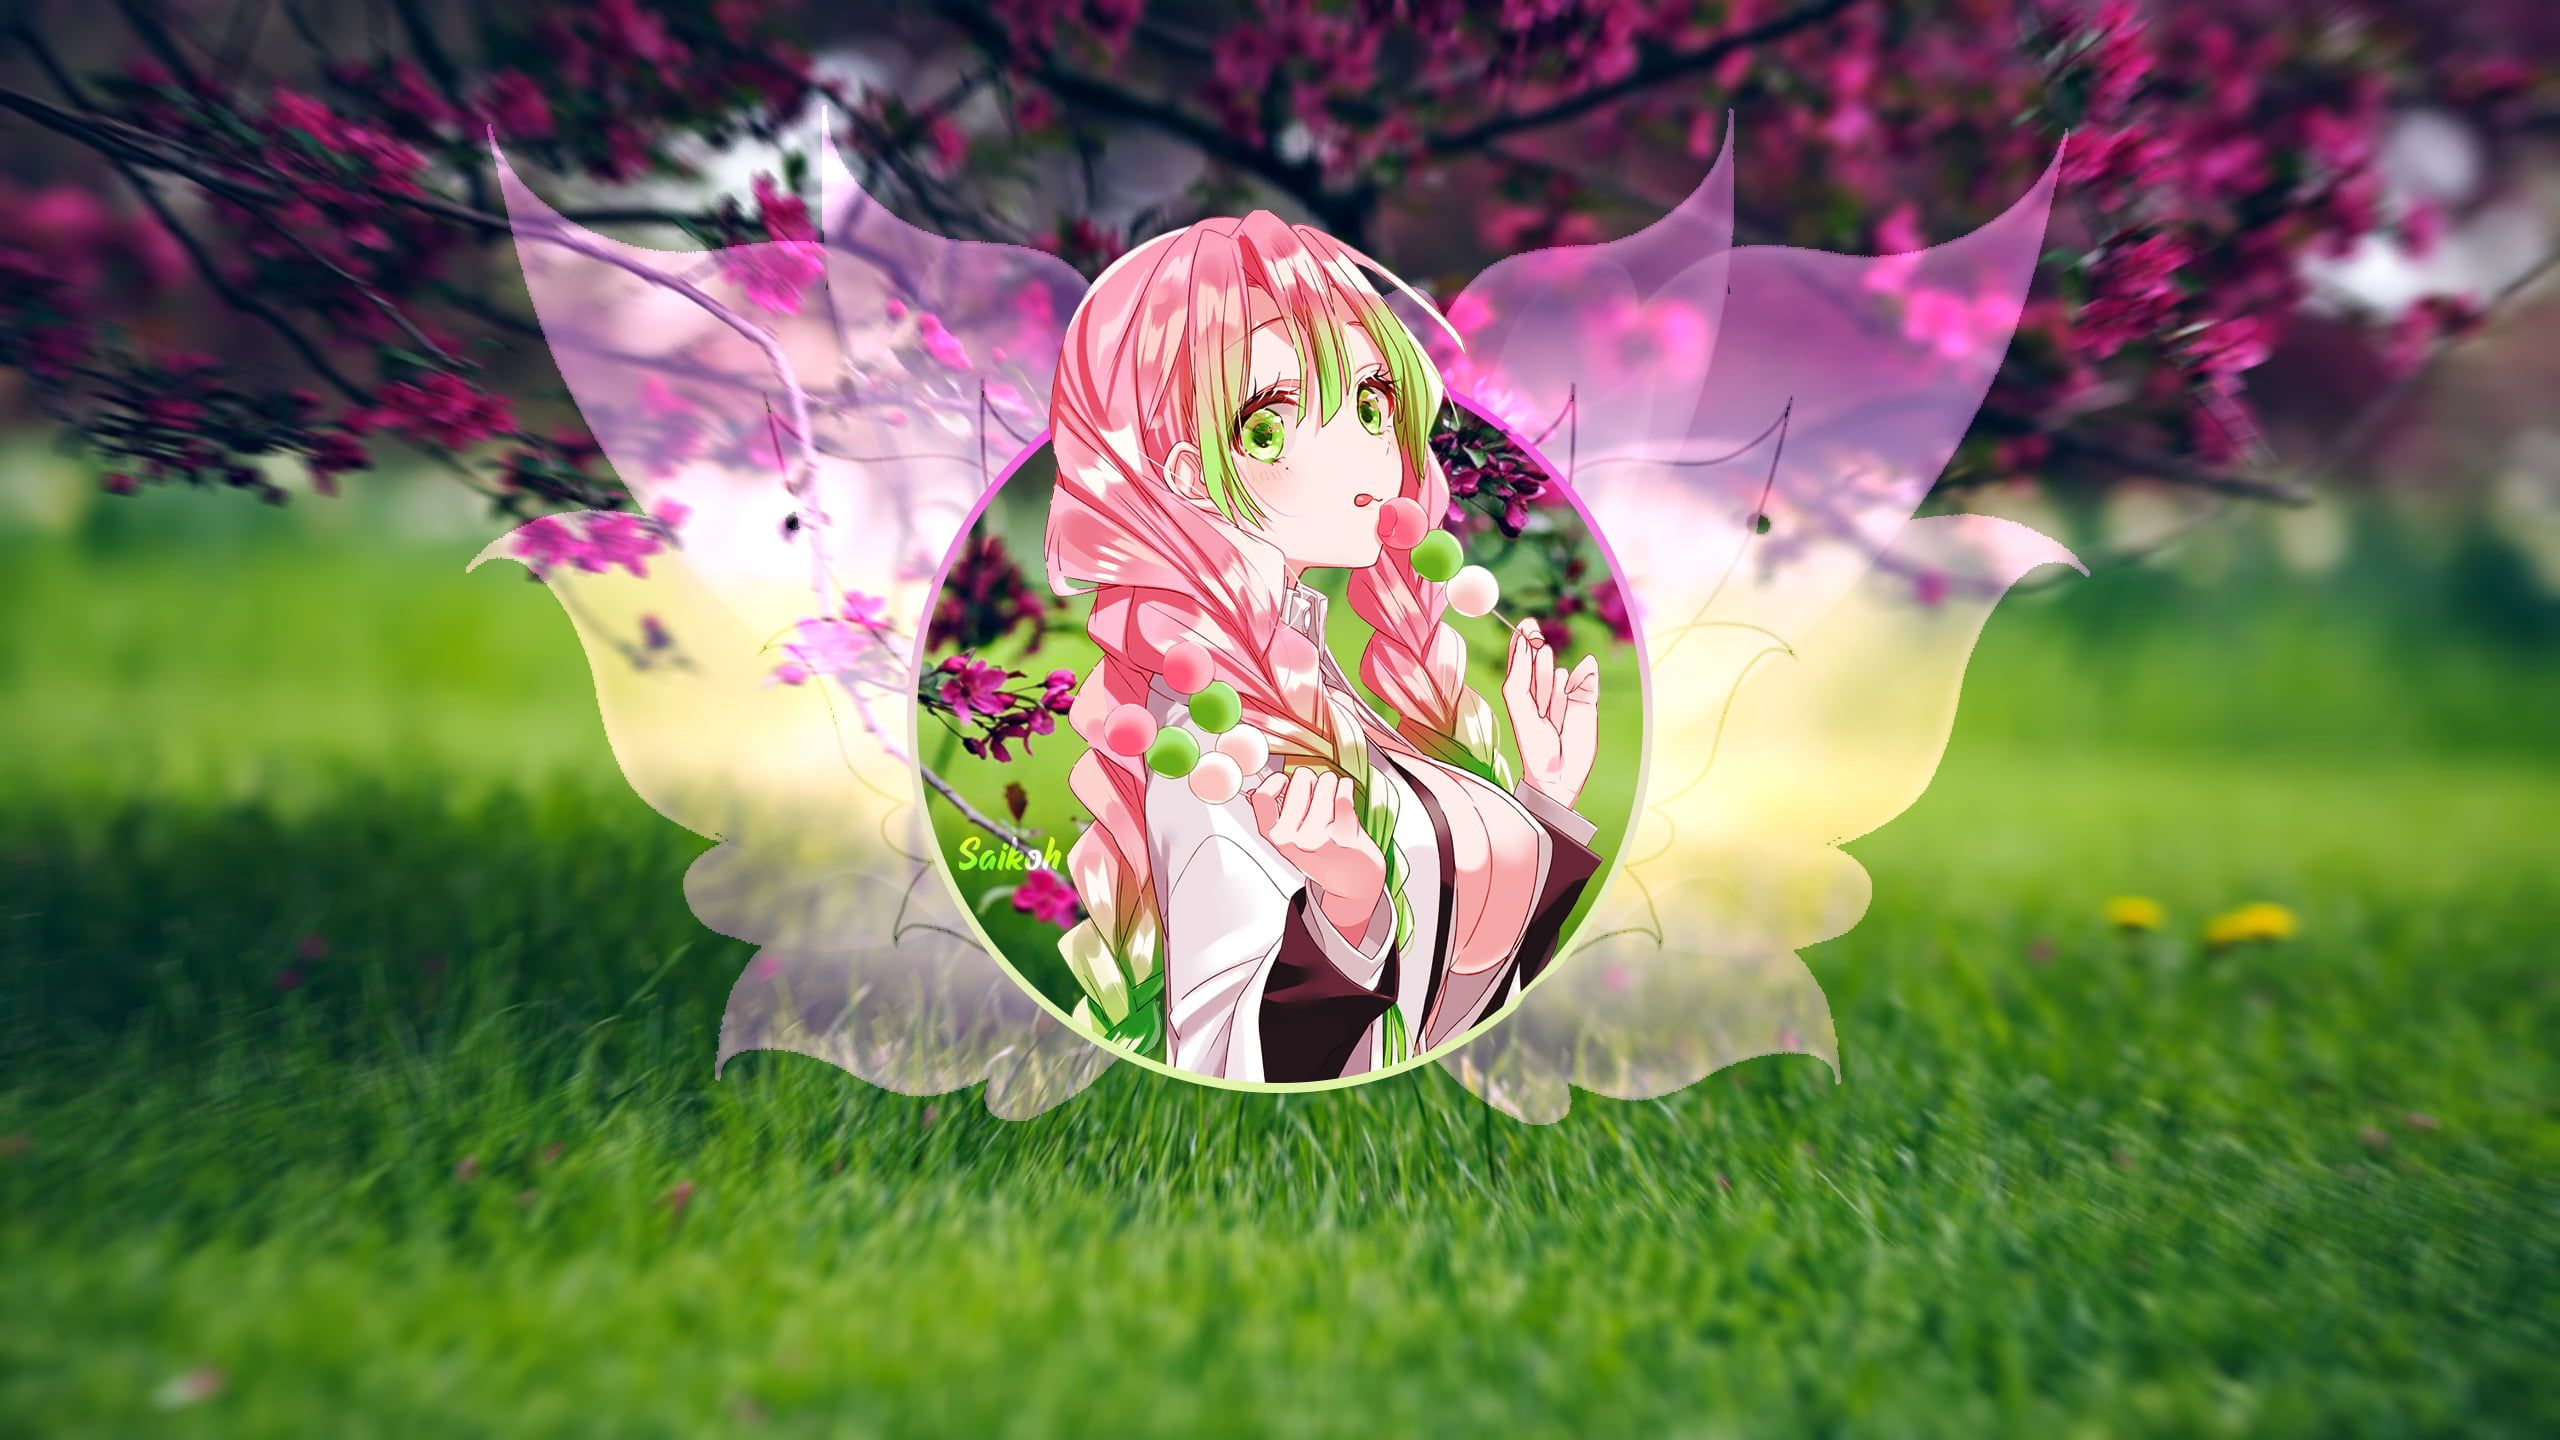 Pin On Computer Backgrounds Once again, the colors on mitsuri is always fantastic, the pink and lime green complimenting each other amazingly. pinterest